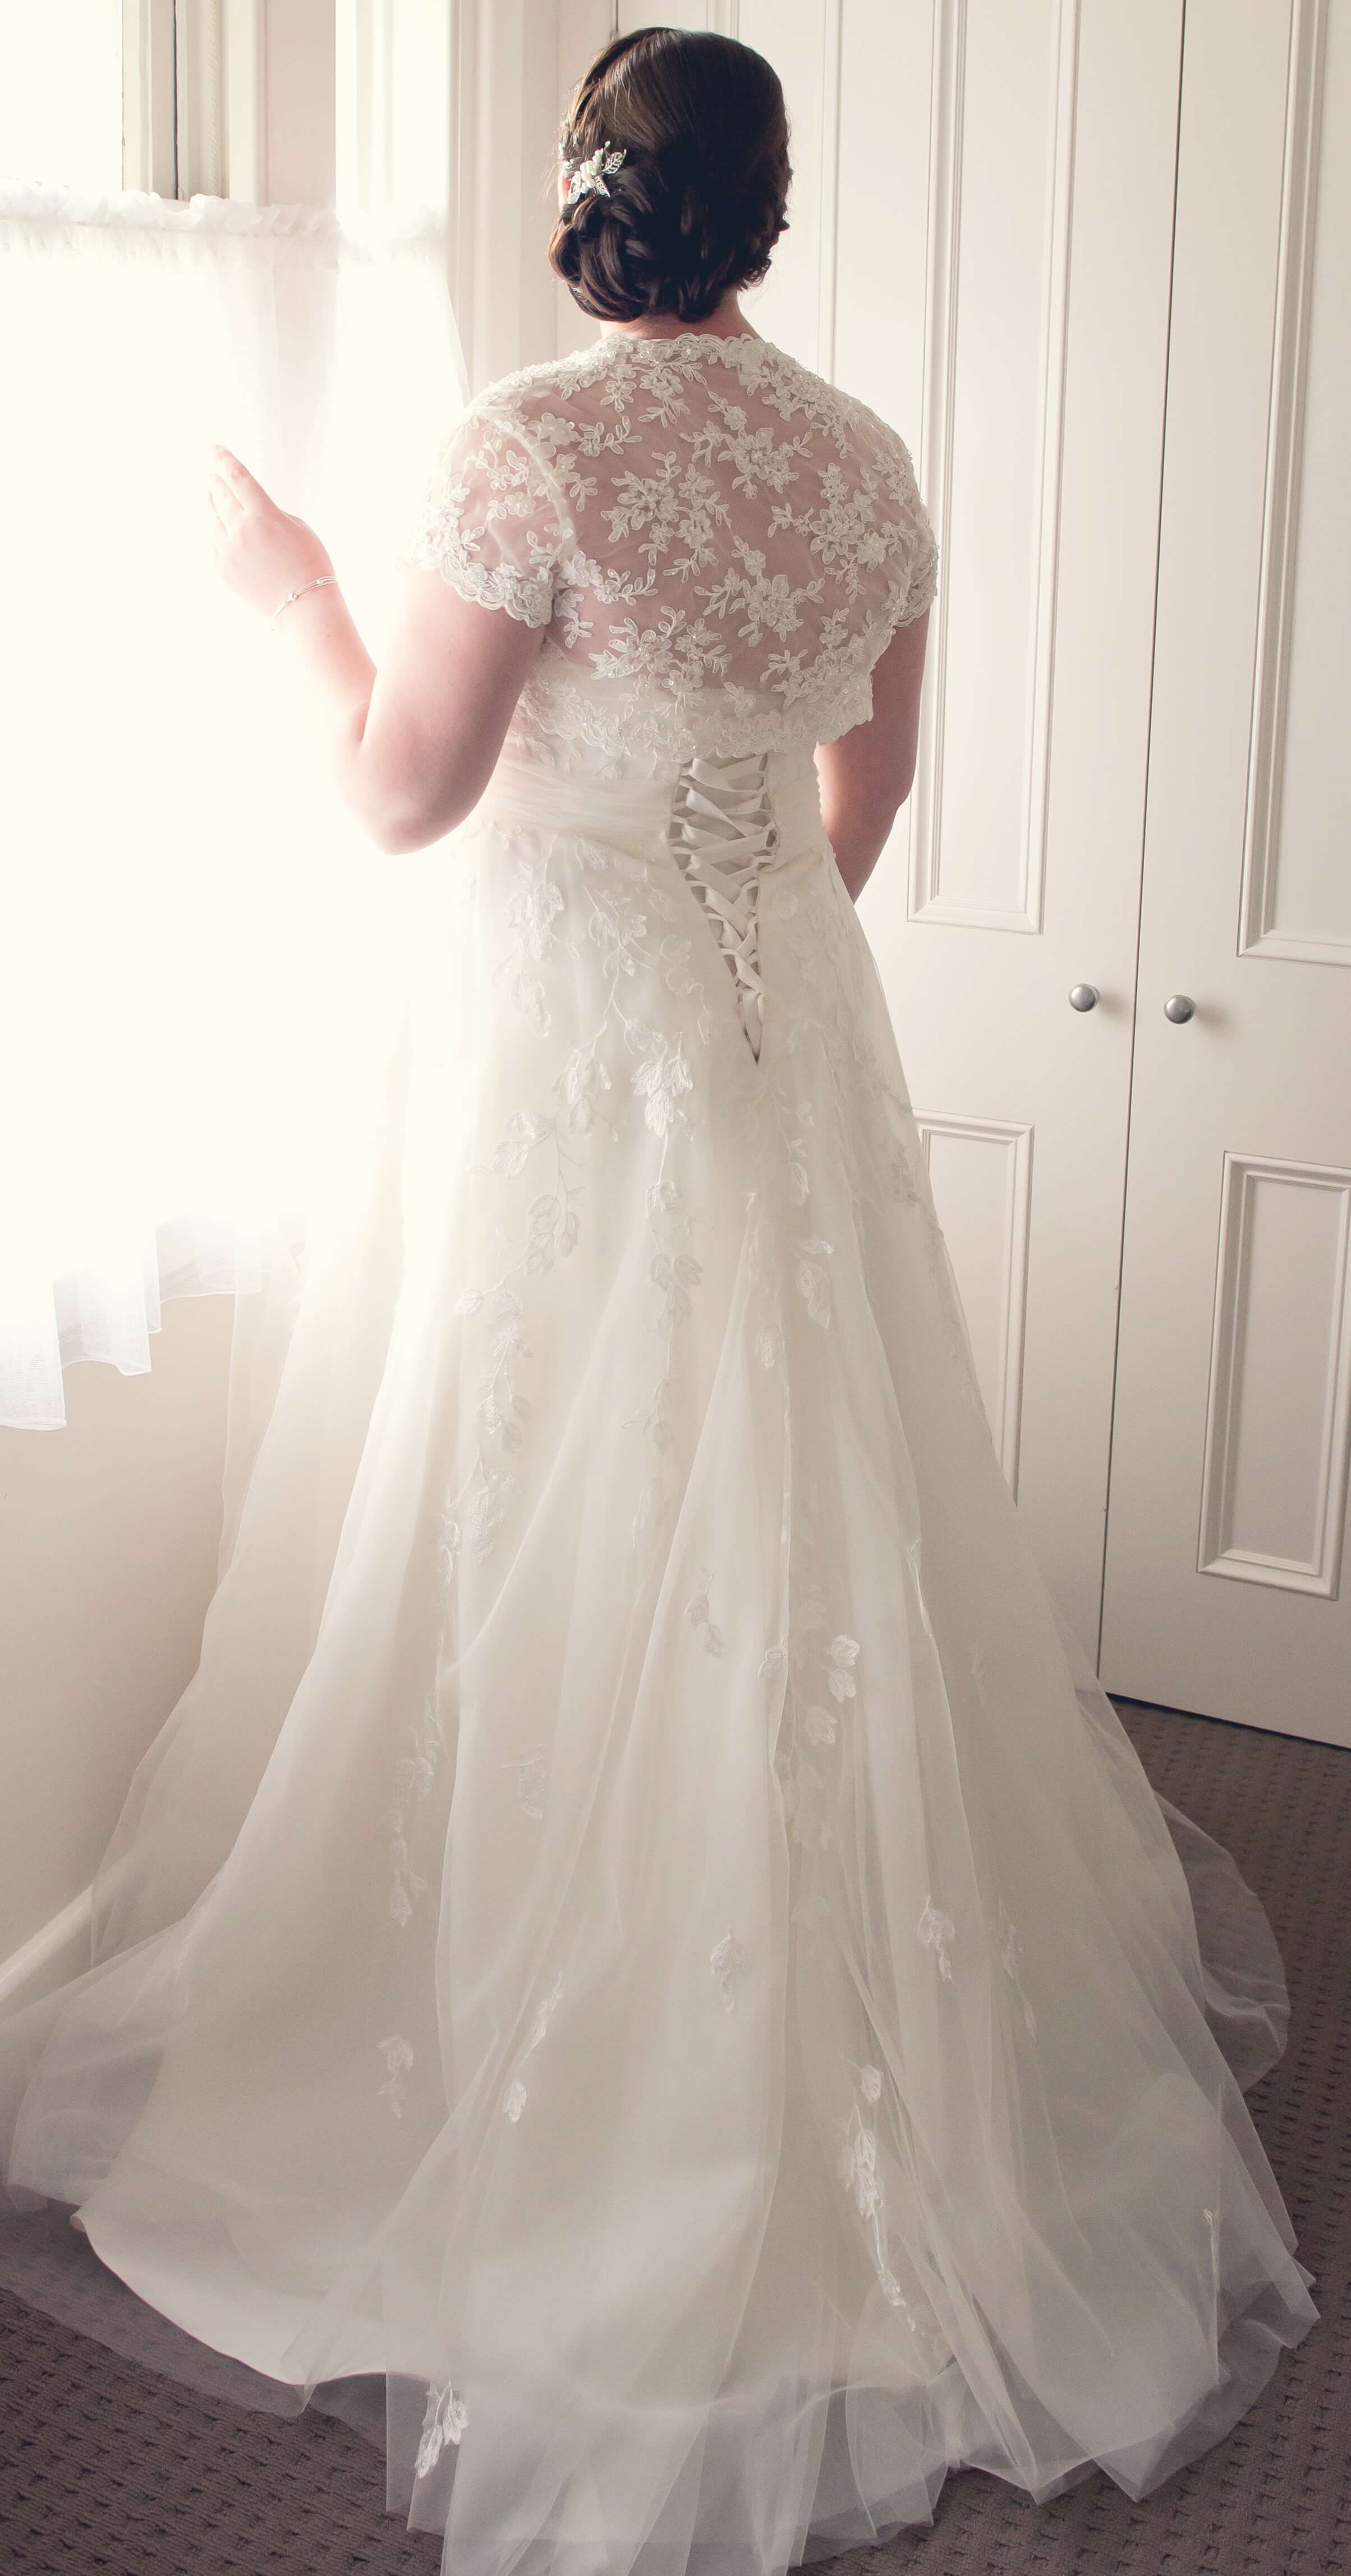 Henry Roth – Size 12 Ball Gown dress | Second hand wedding dresses Morwell - Size 12